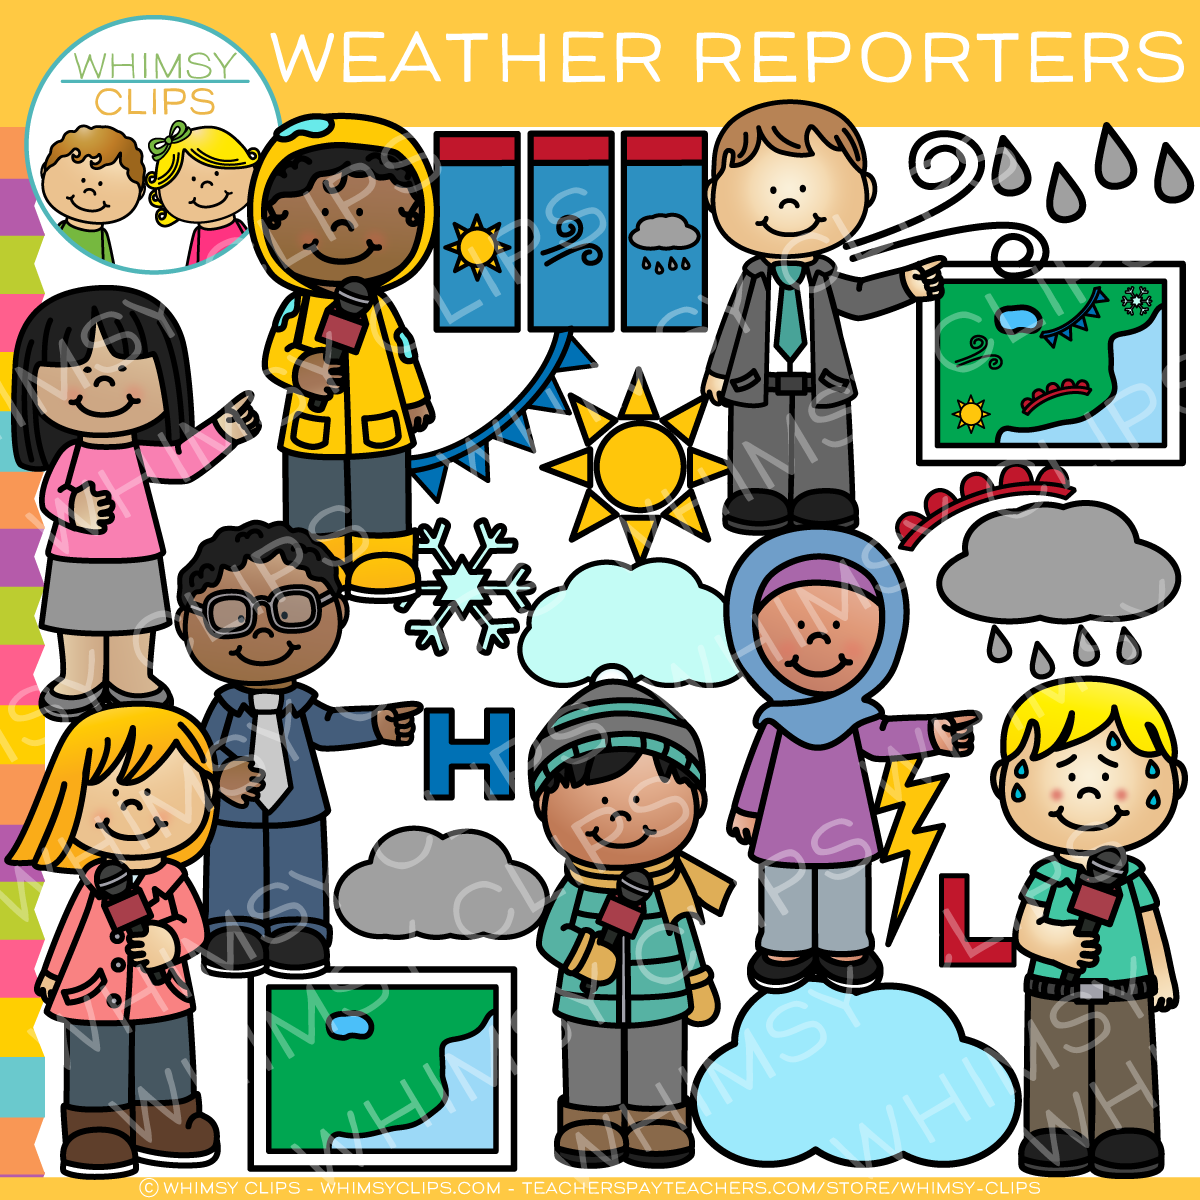 Clipart images of symbols kids of friendships picture transparent download Kids Weather Reporters Clip Art picture transparent download